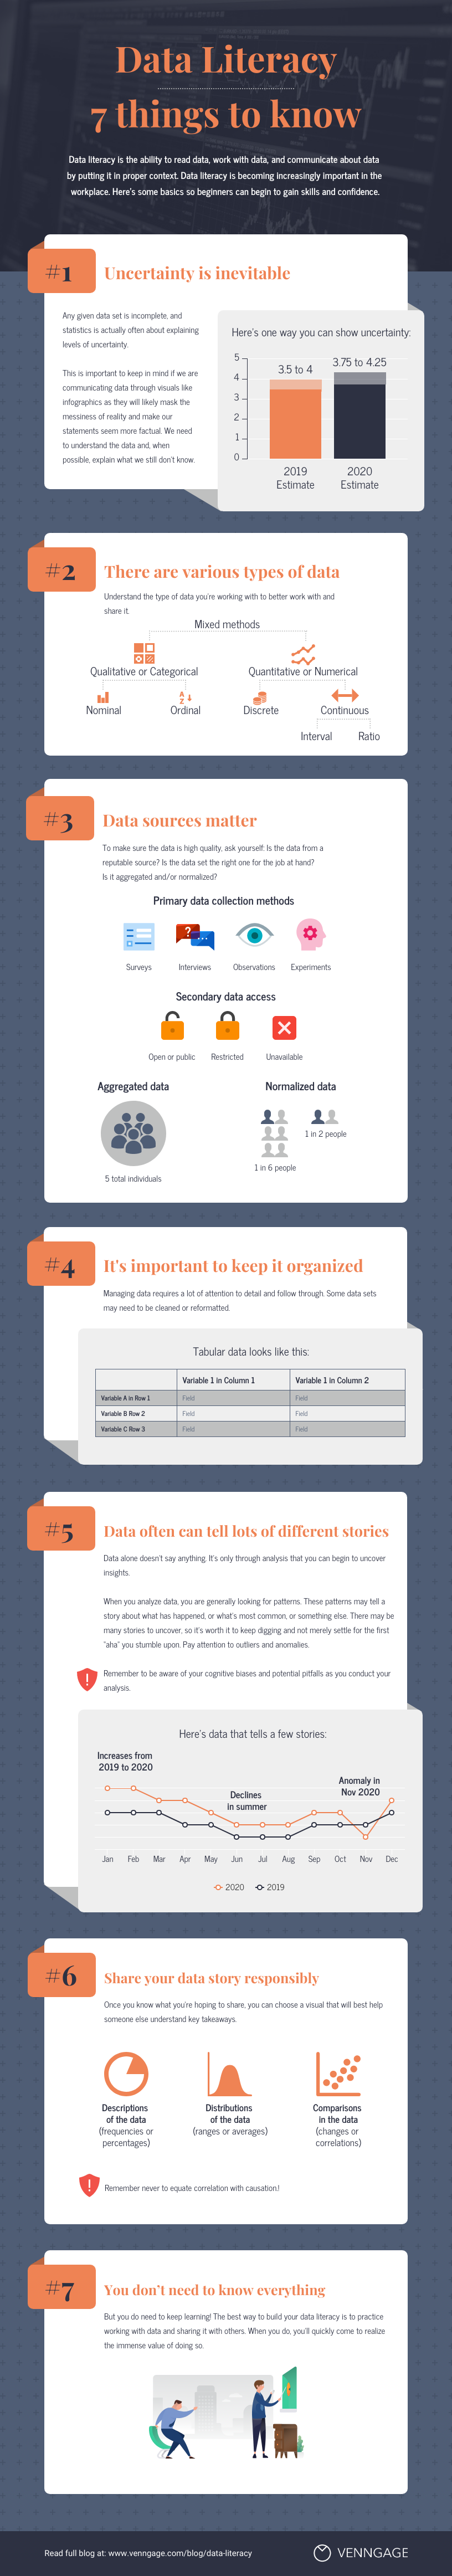 Data Literacy 7 things to know